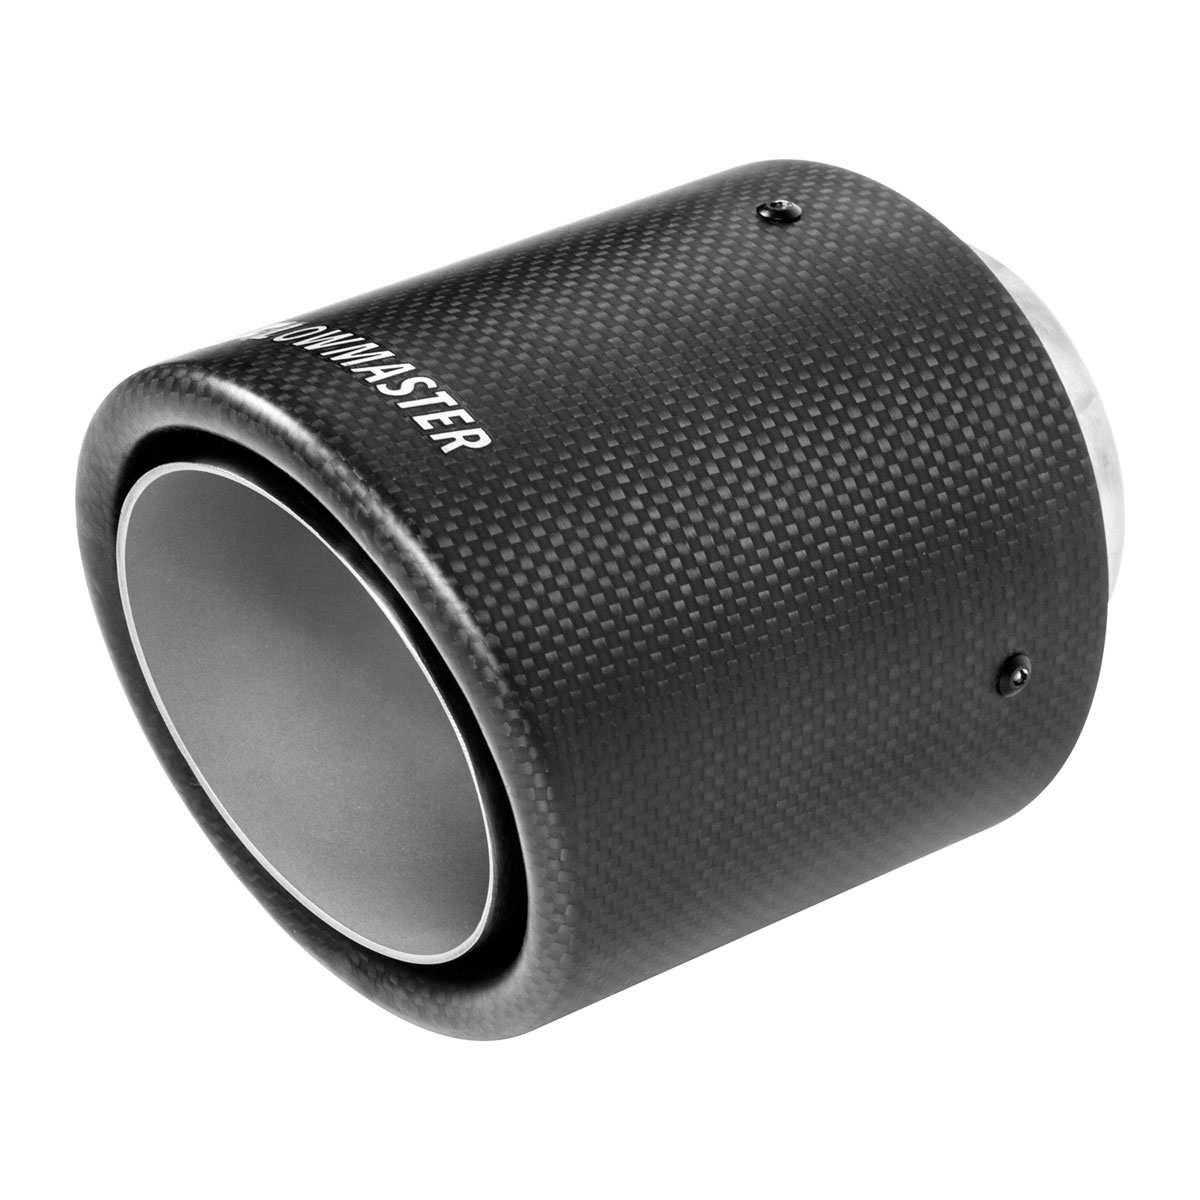 flowmaster 15400 exhaust tip 4 in rolled angle carbon fiber fits 2 5 in tubing weld on